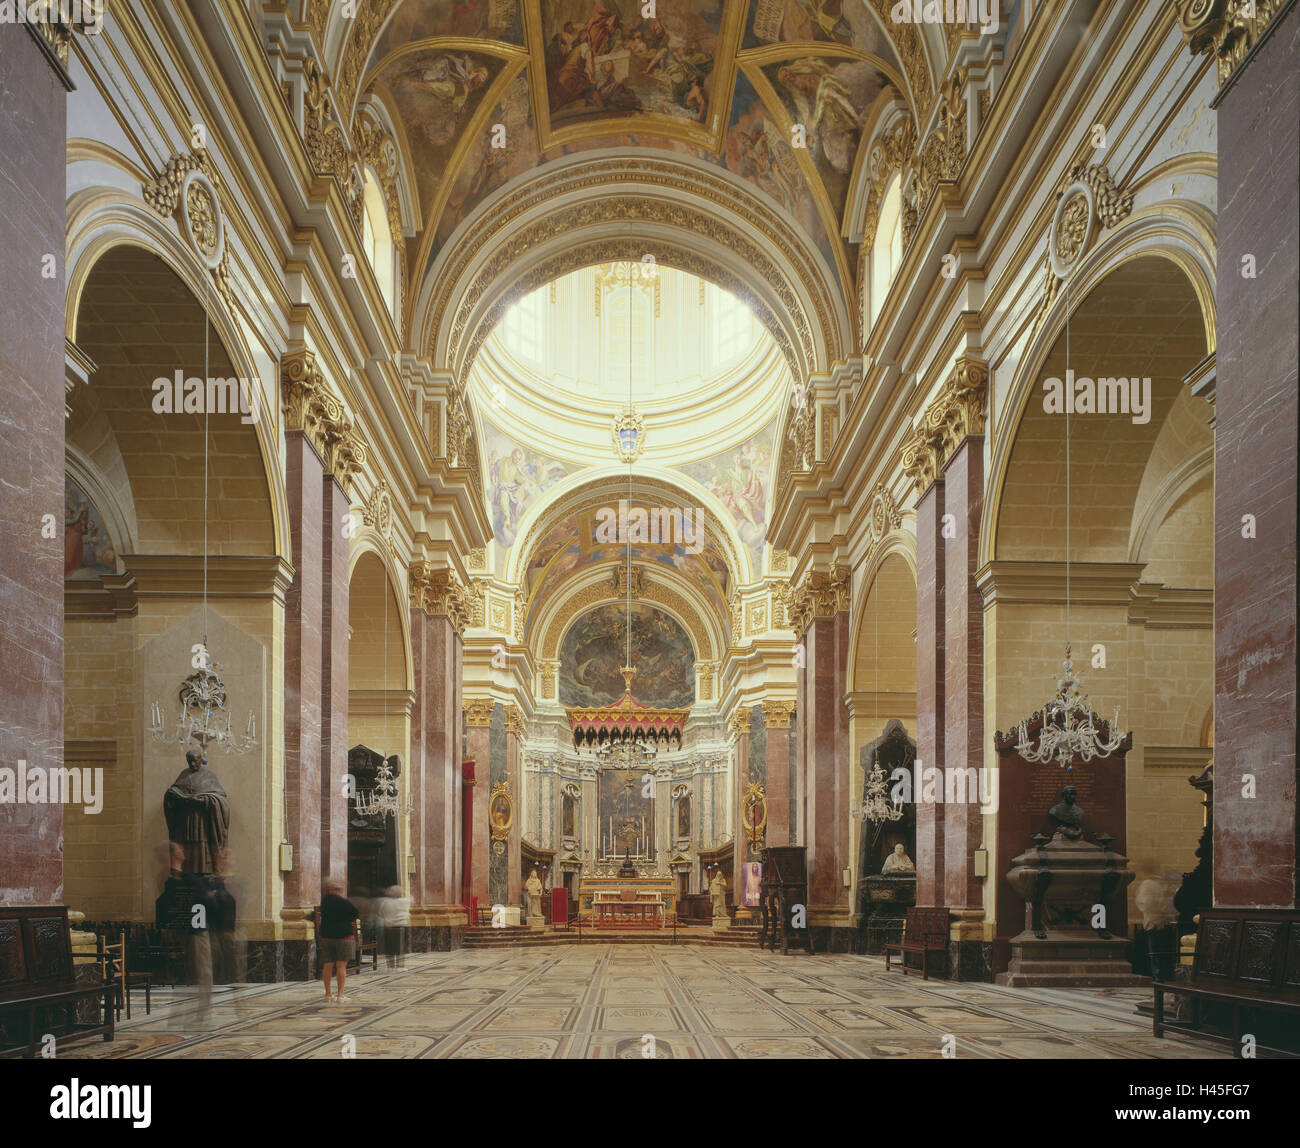 Malta, Mdina, St. Peter and Paul's cathedral, interior shot, island, Mediterranean island, destination, place - Stock Image